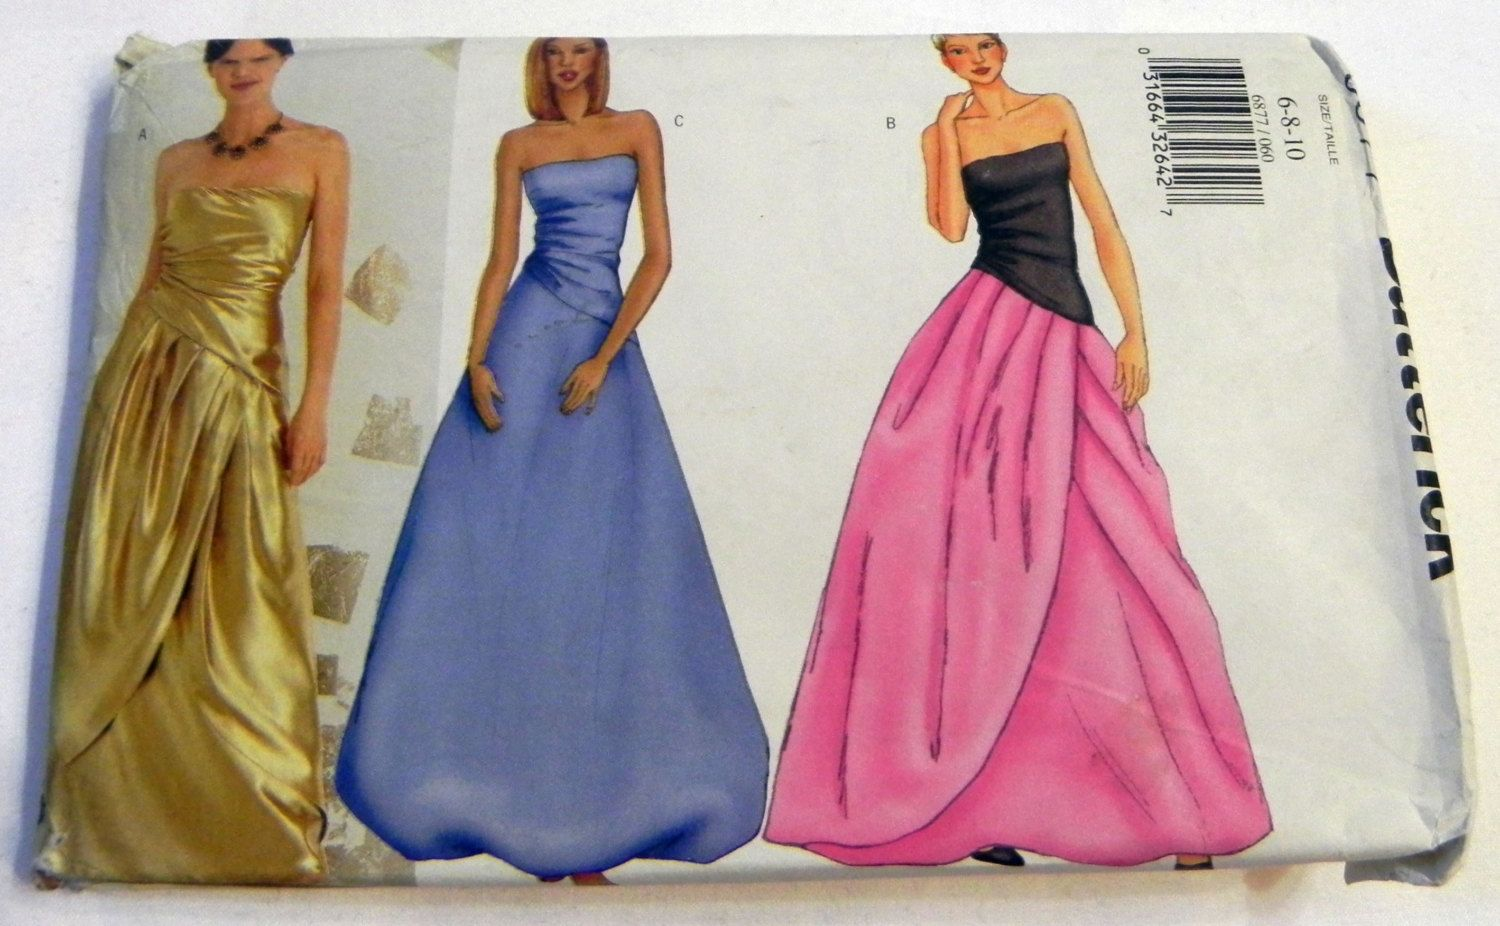 2000s Evening Gown Bridesmaid Side Gathered Prom Dress Bubble Etsy Gown Sewing Pattern Evening Dress Patterns Evening Dress Sewing Patterns [ 926 x 1500 Pixel ]